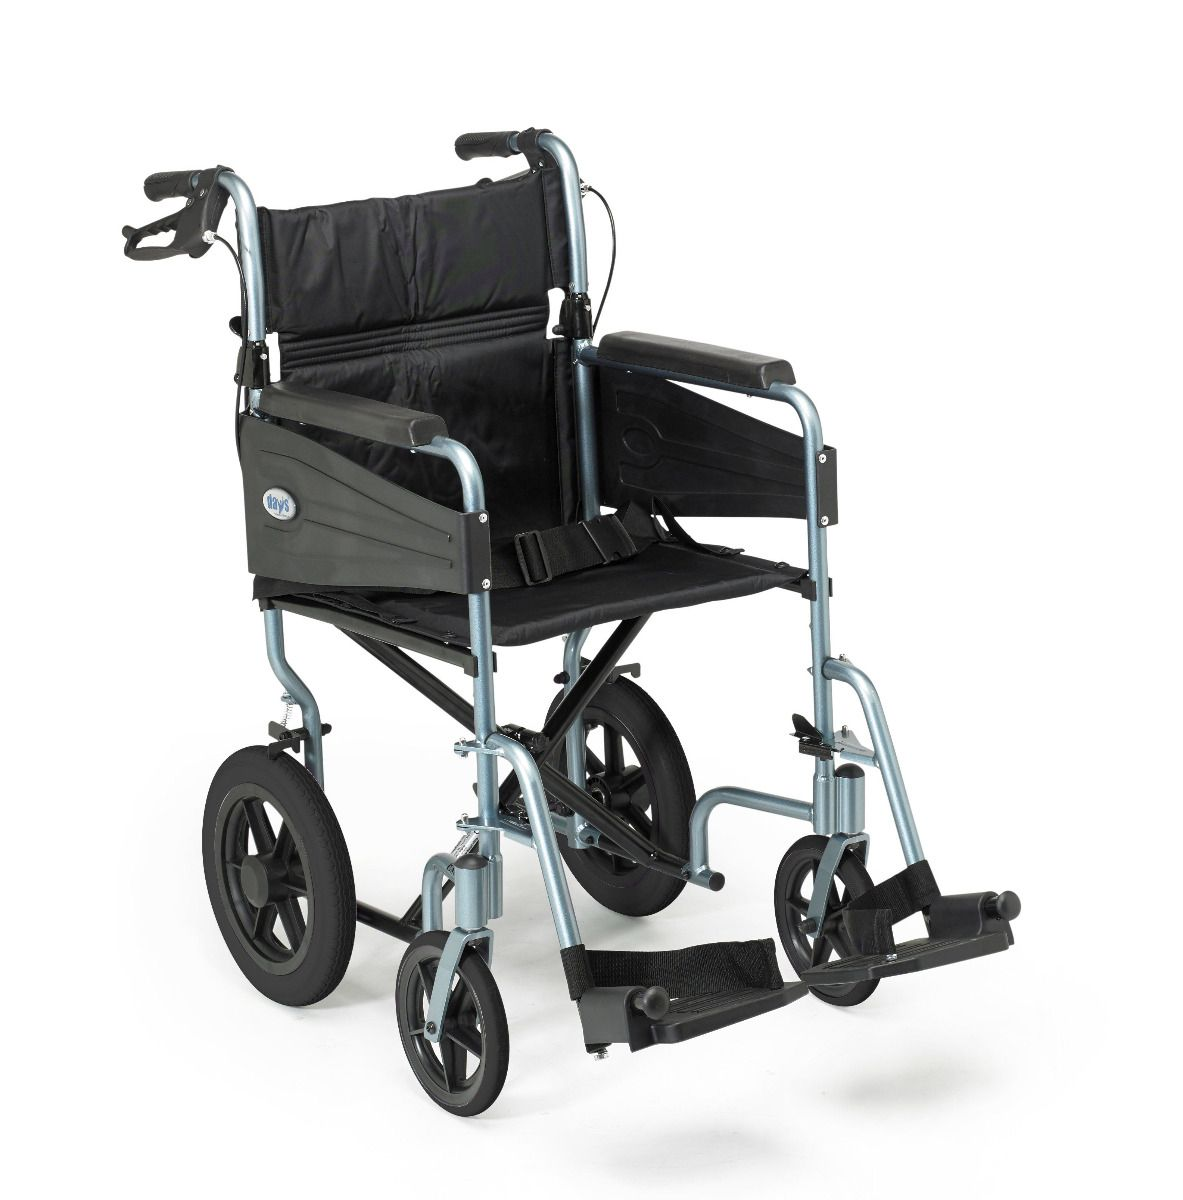 Side view of the Days Escape Lite wheelchair showing the attendant brakes and blue frame colour